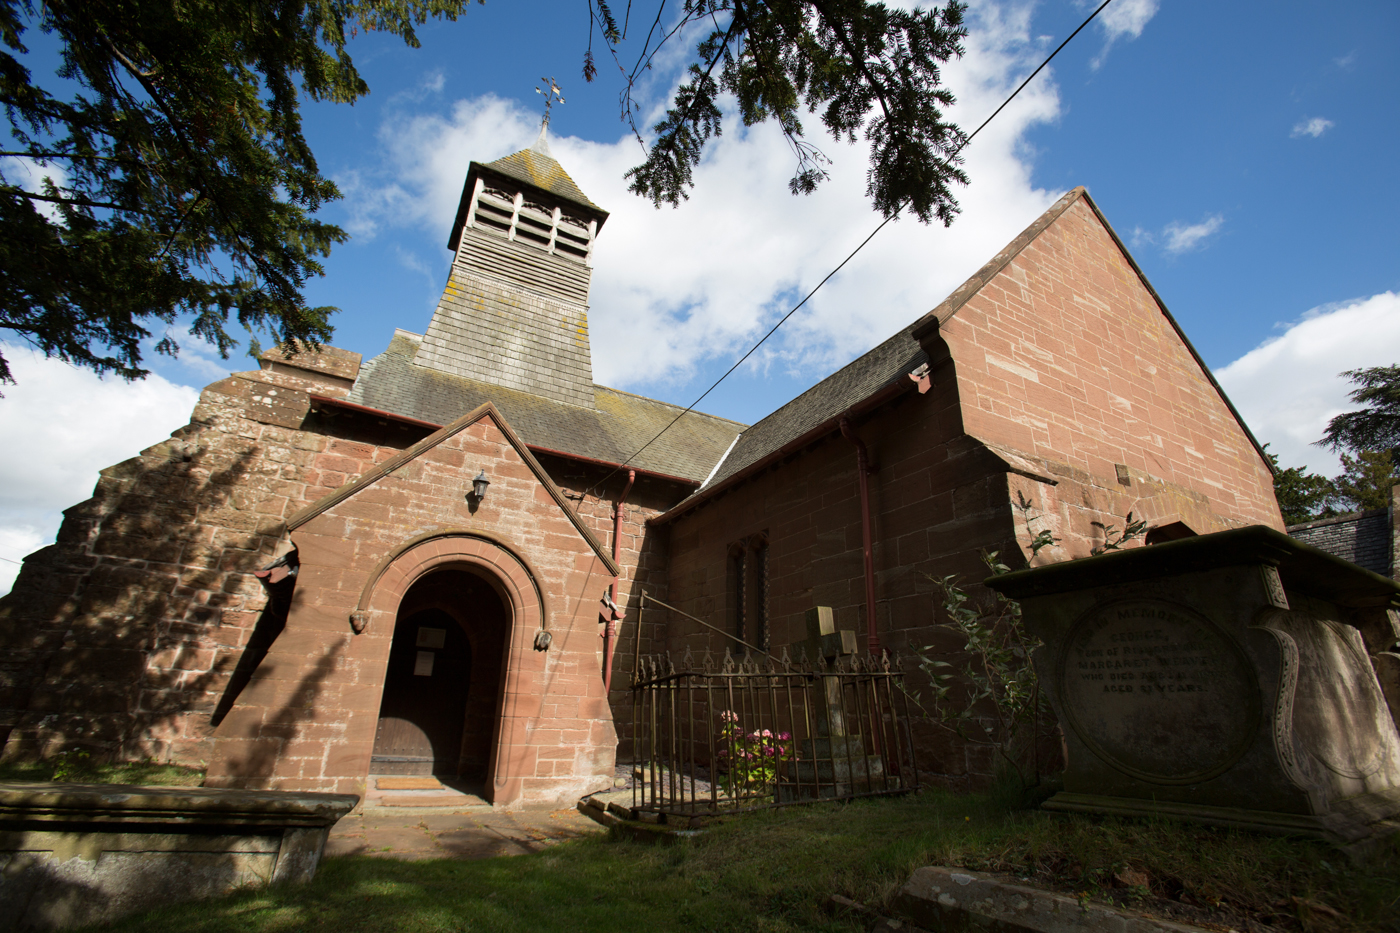 Settlement of Bruera, Cheshire, England. Picturesque view of the historic Grade II listed St Mary's Anglican Parish Church.